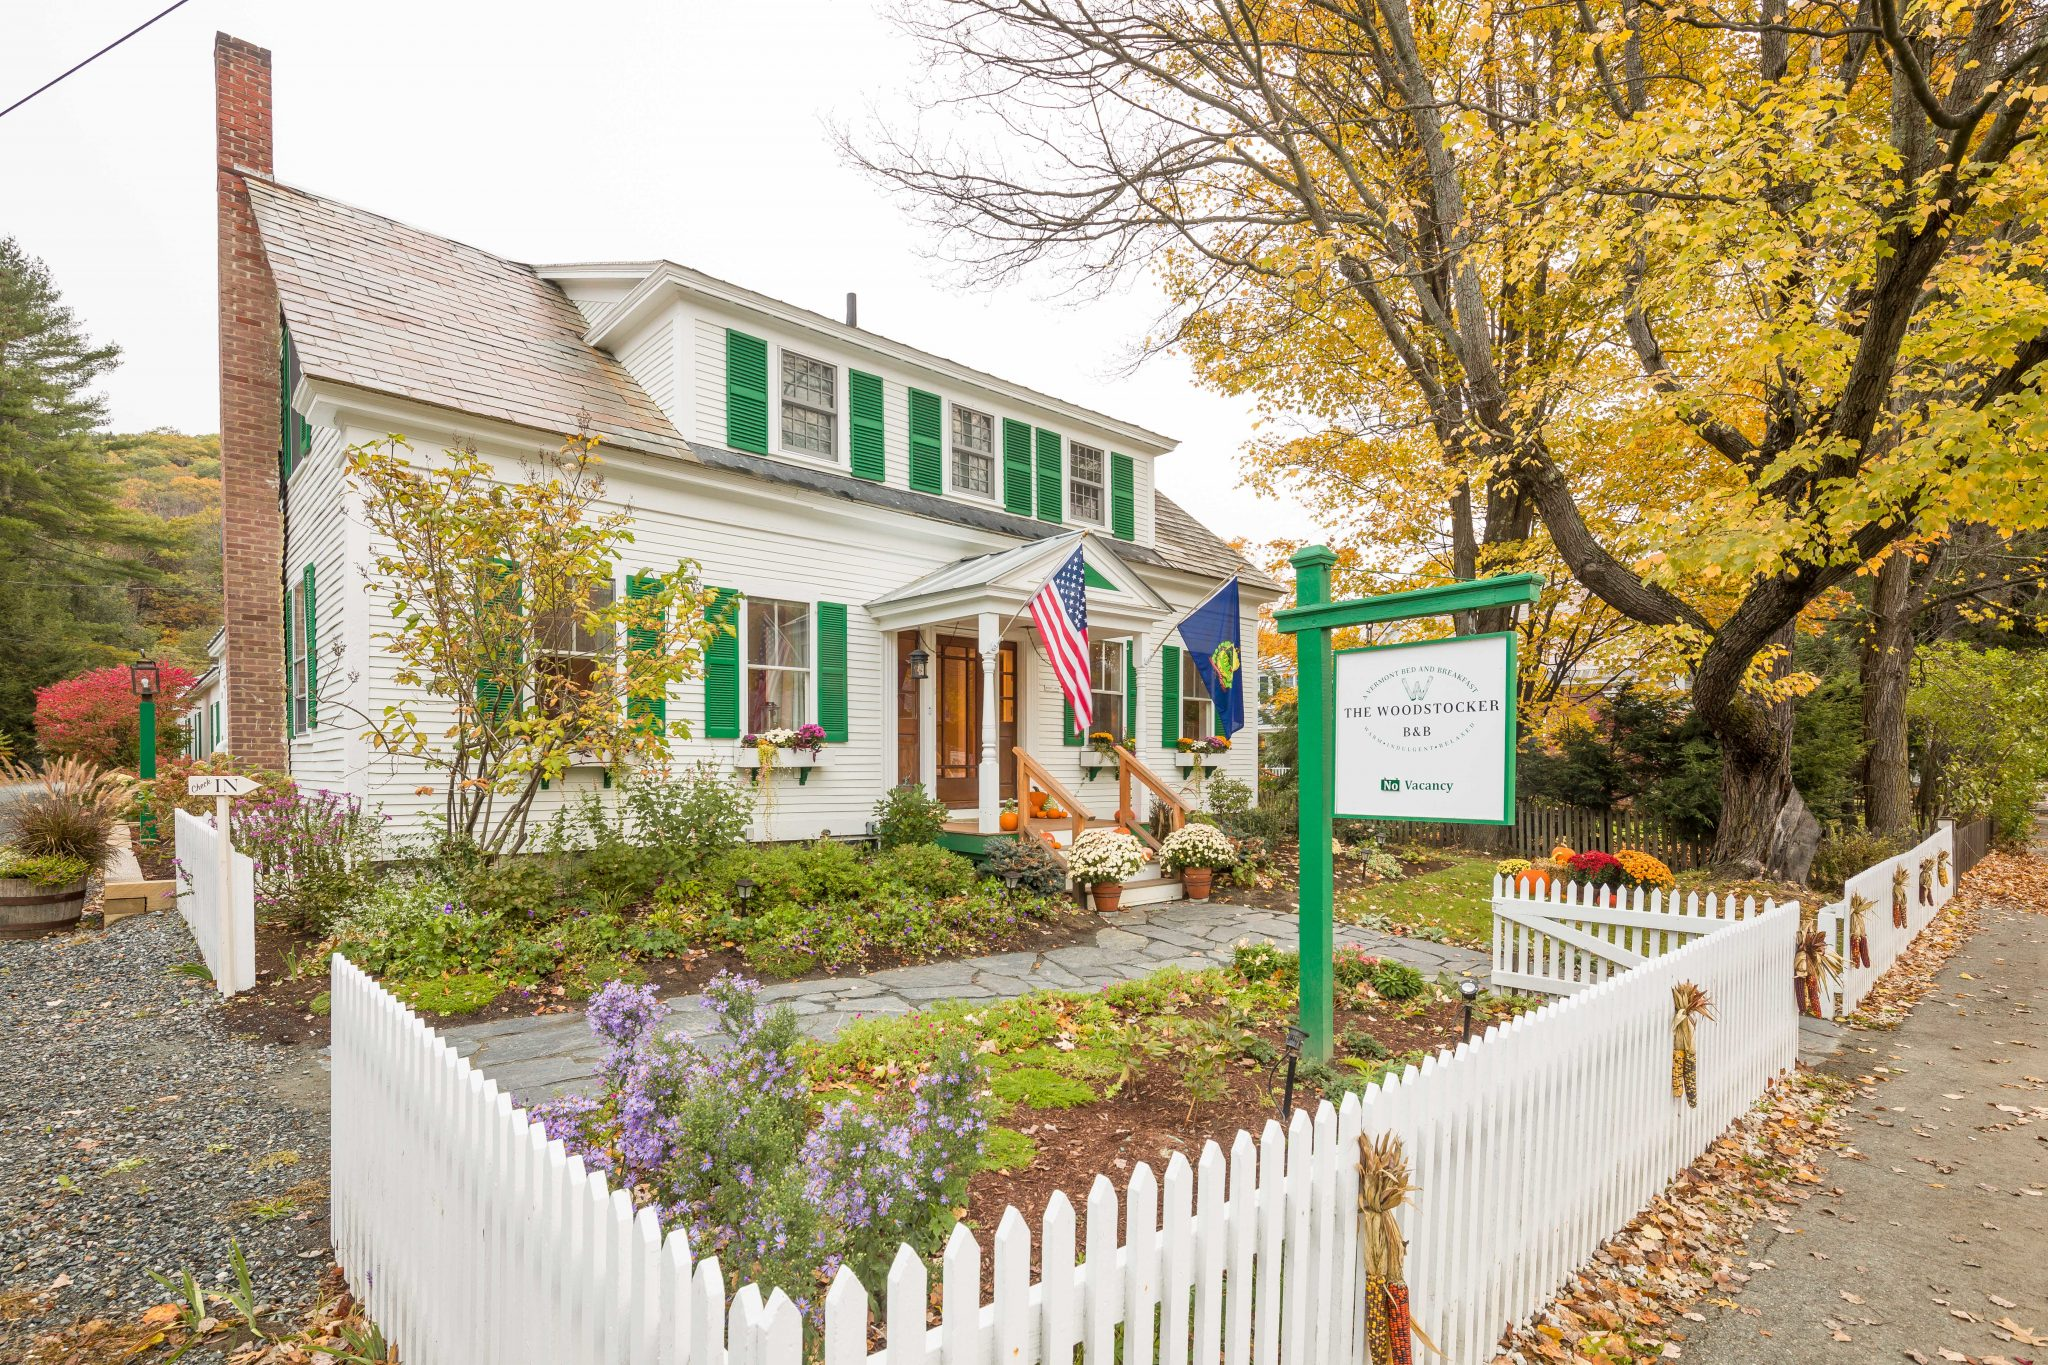 One story white house with green shutters, white picket fence and front garden in the fall